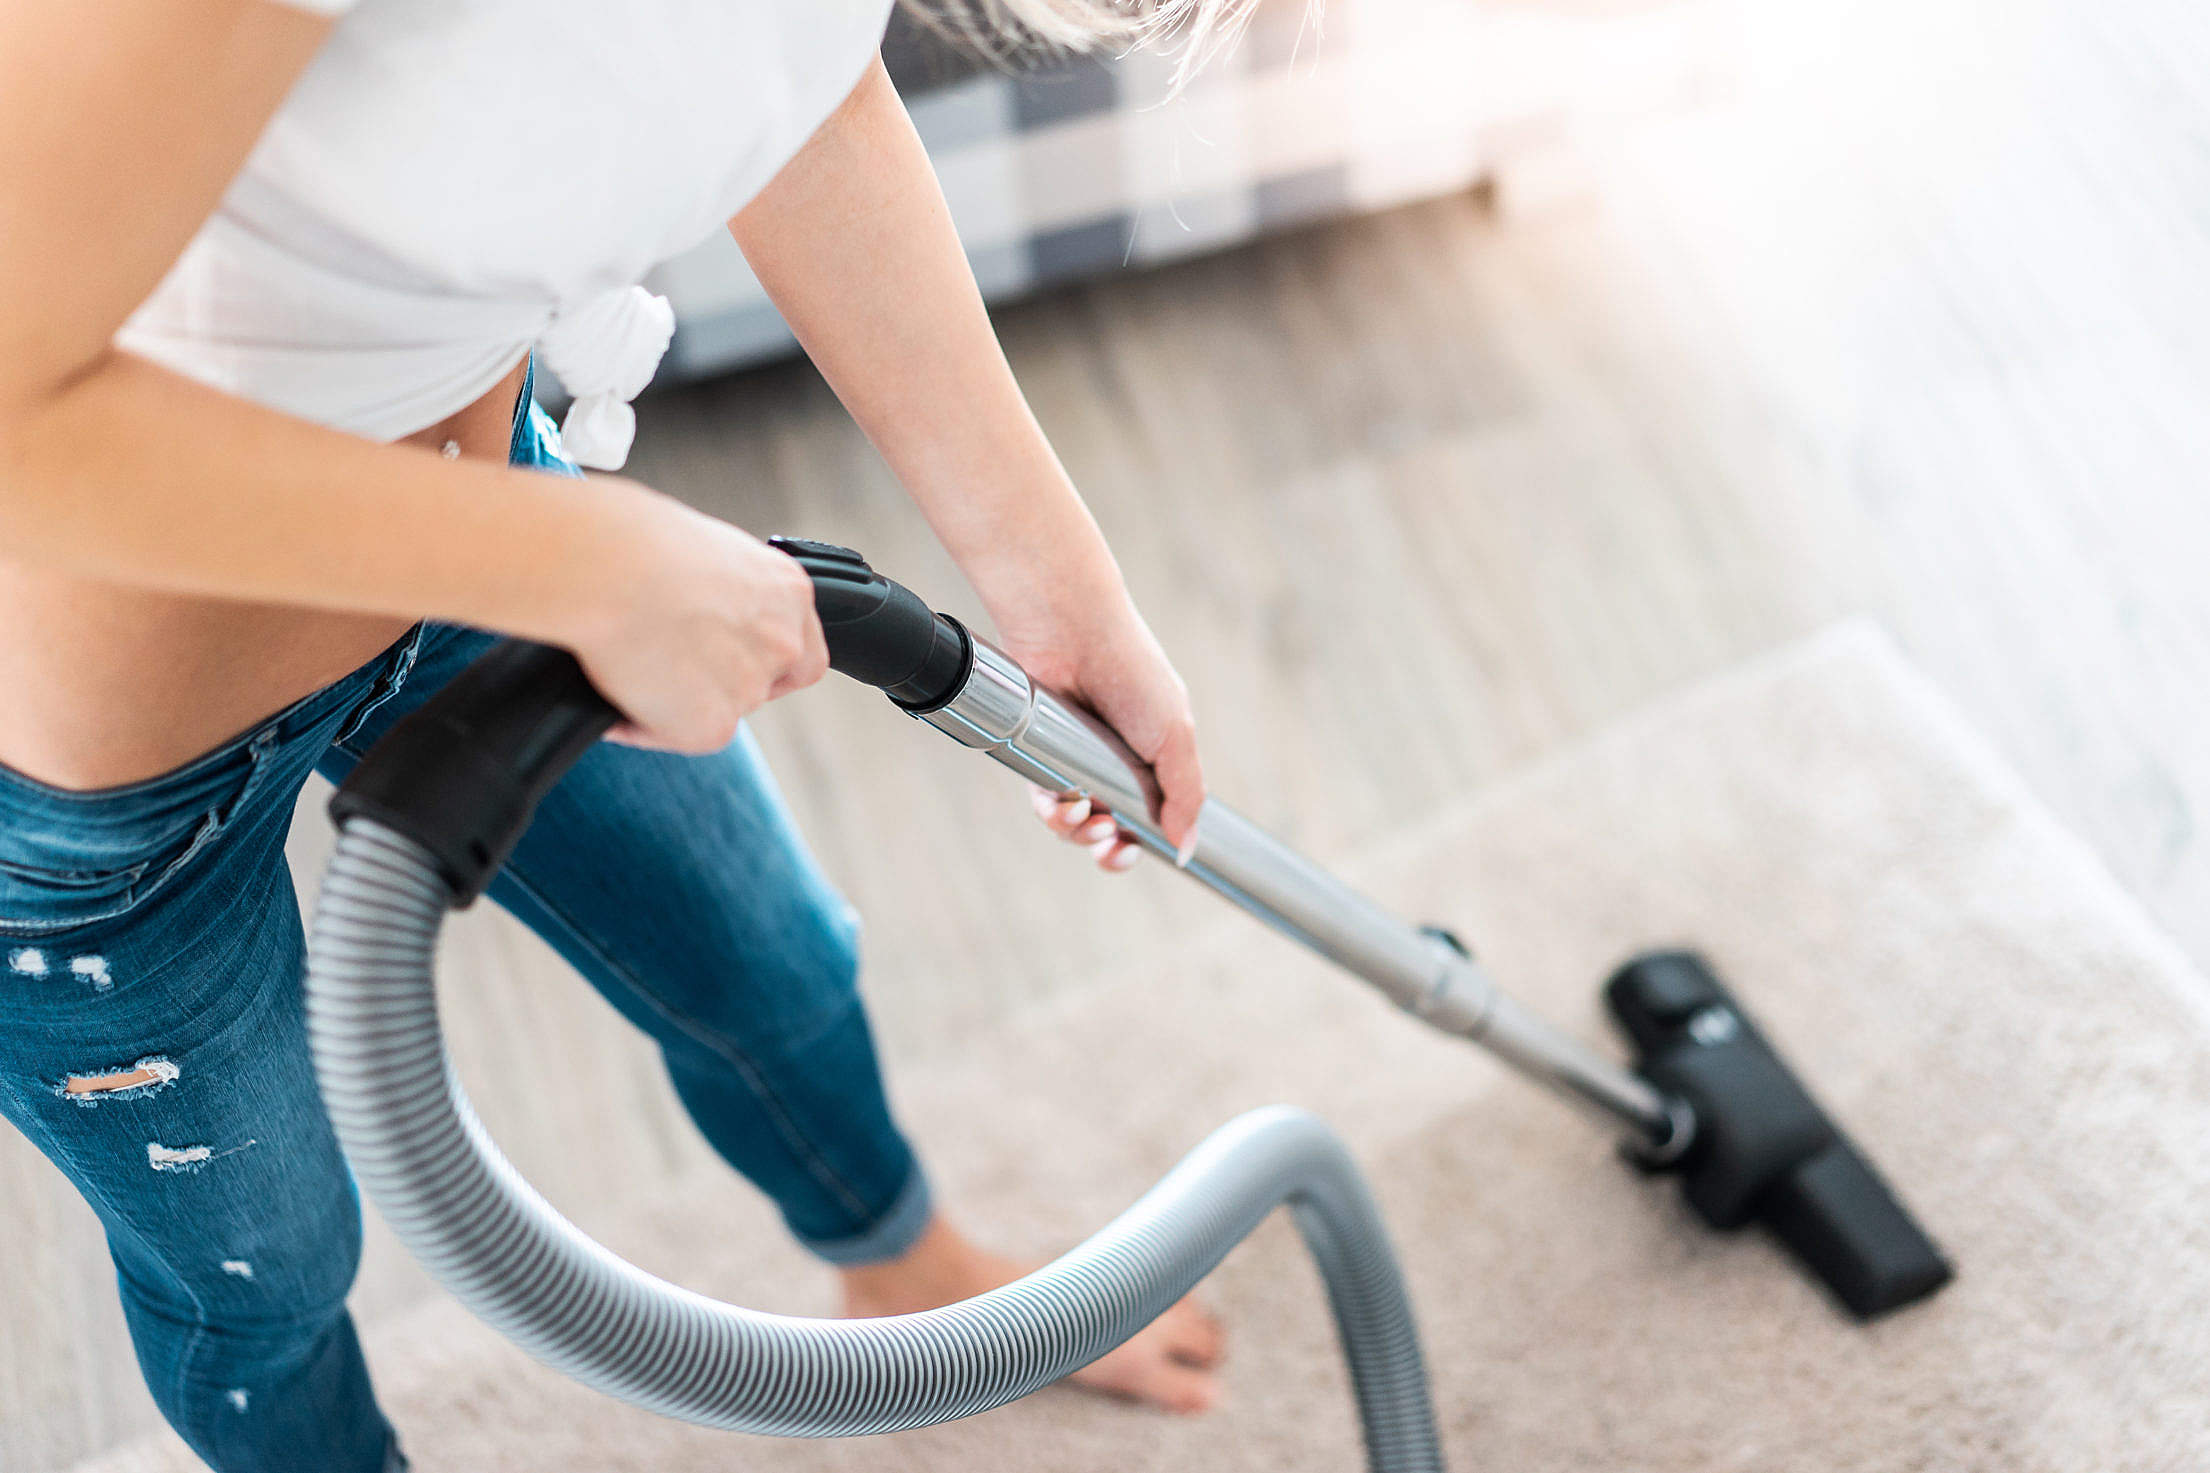 Young Woman Cleaning Carpet with Vacuum Cleaner Free Stock Photo